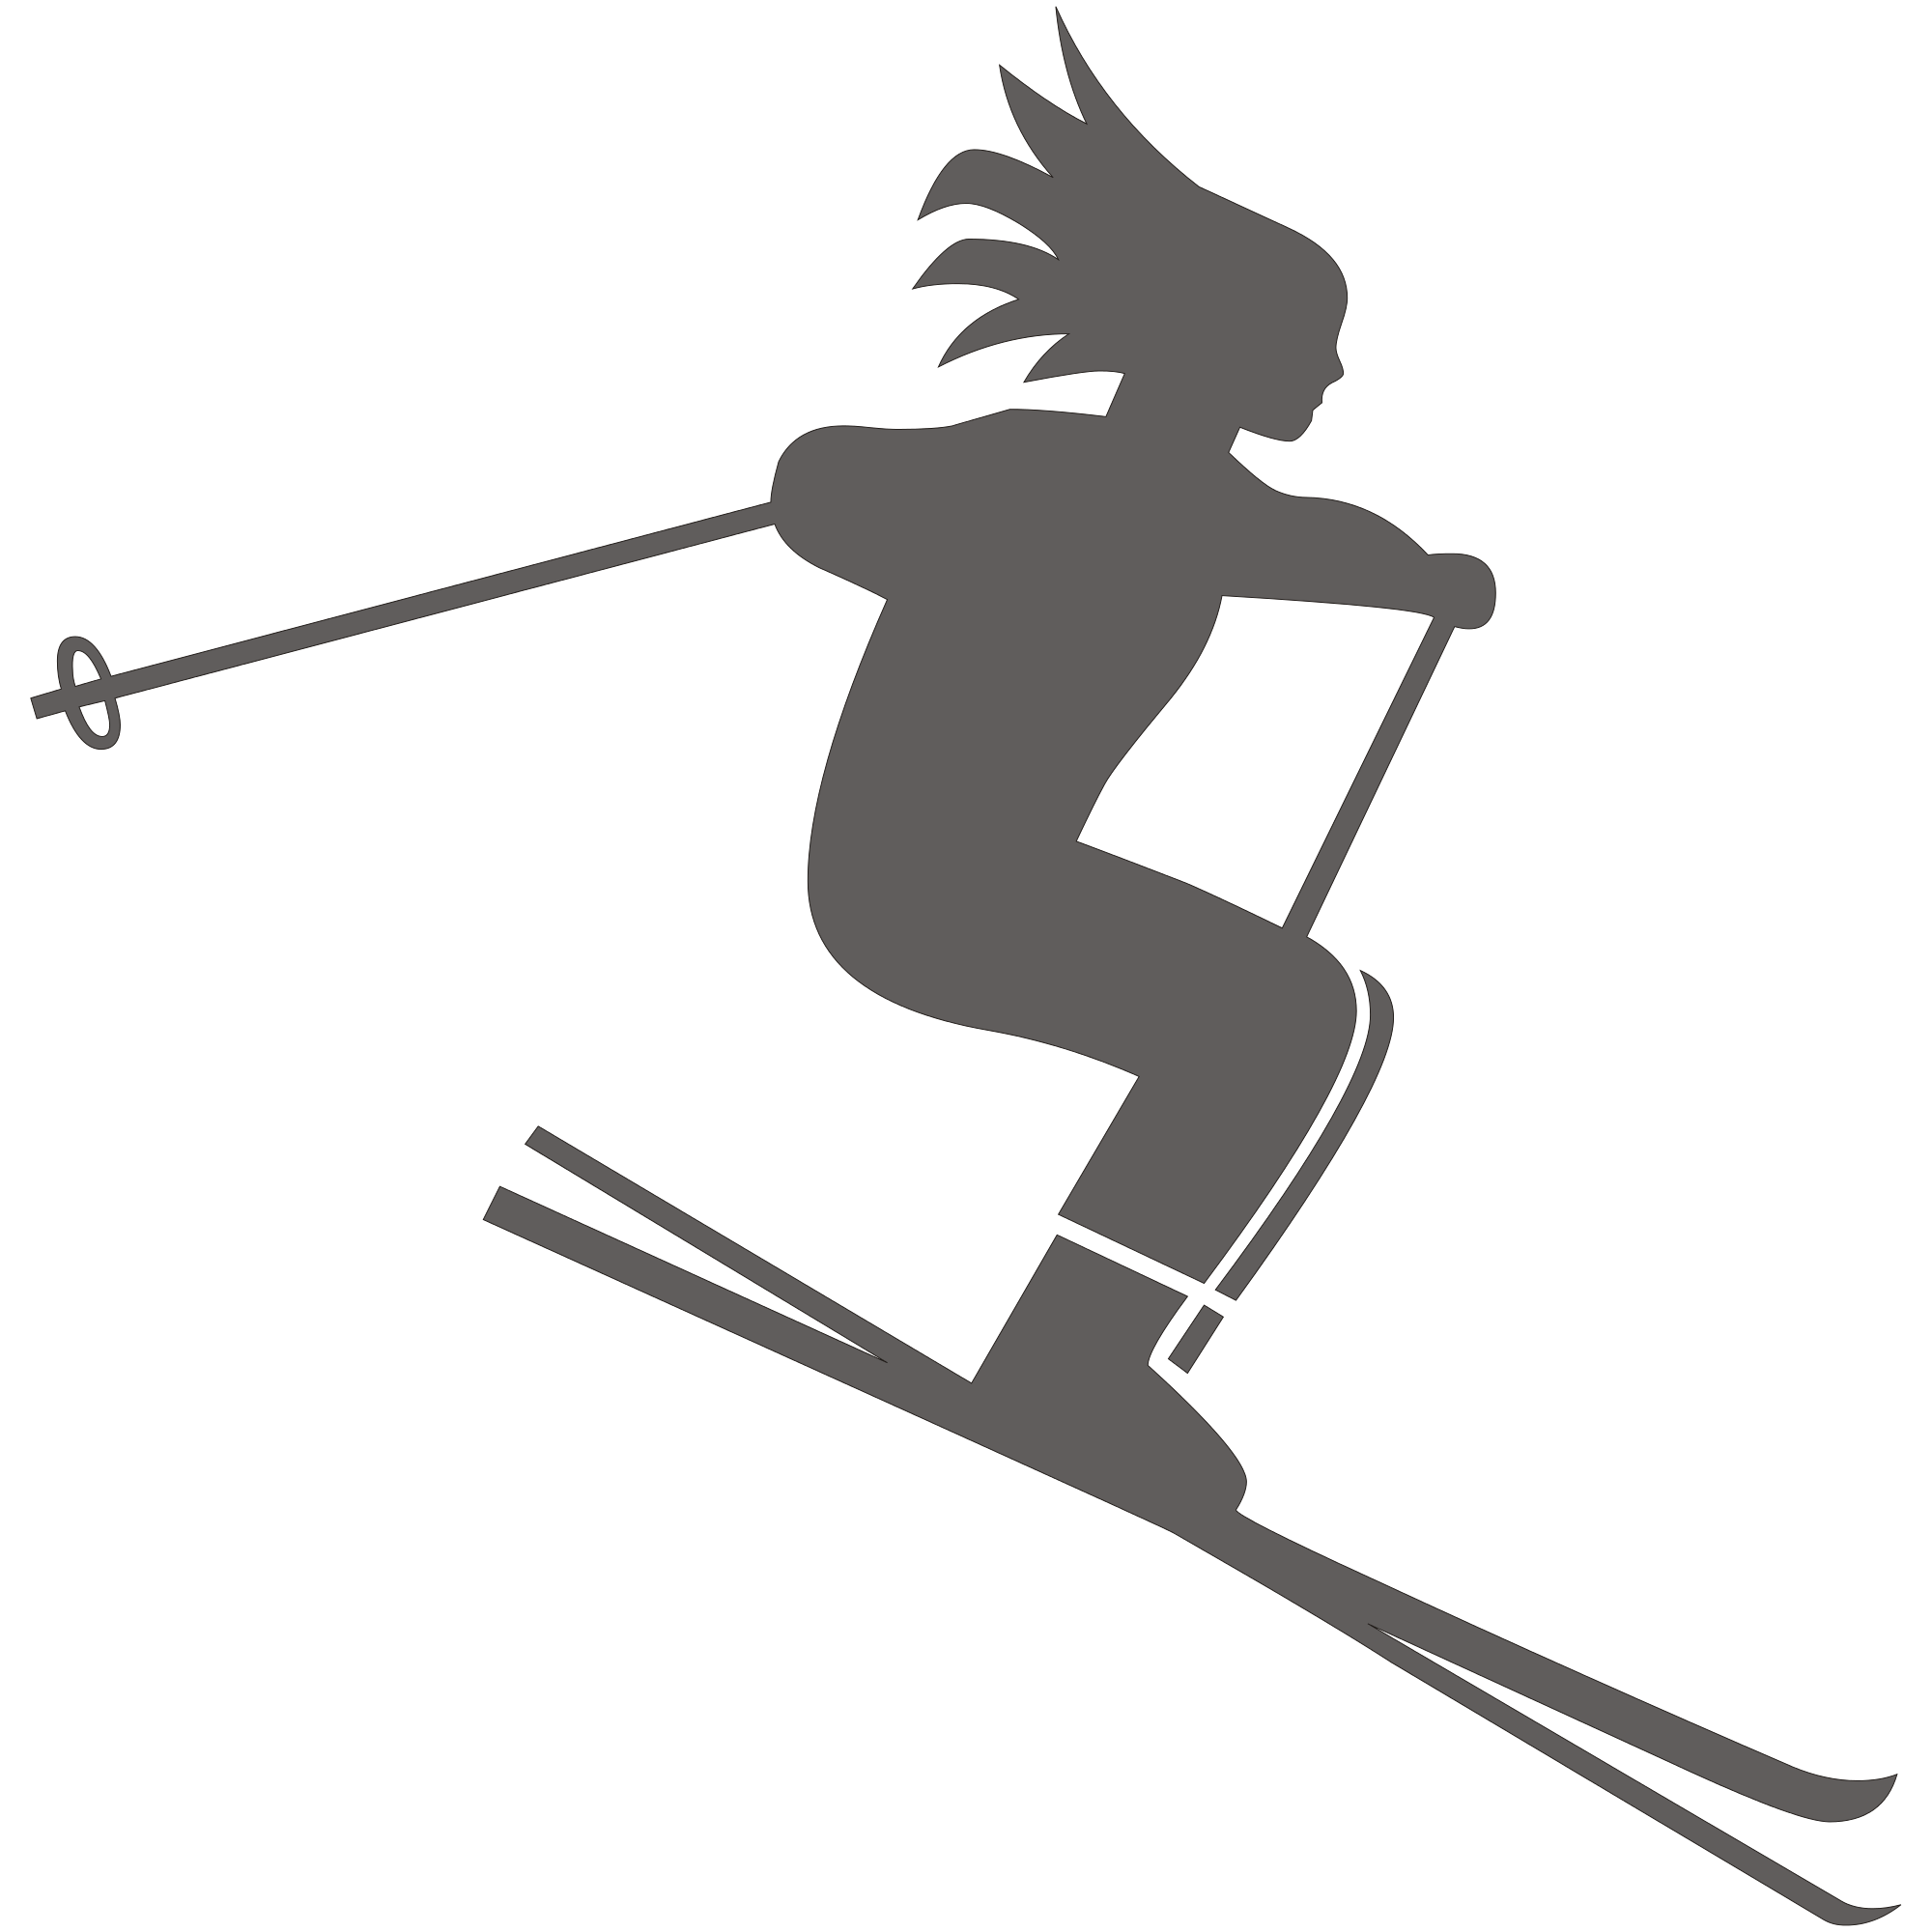 Cross country skis clipart image freeuse download Skiing PNG image freeuse download